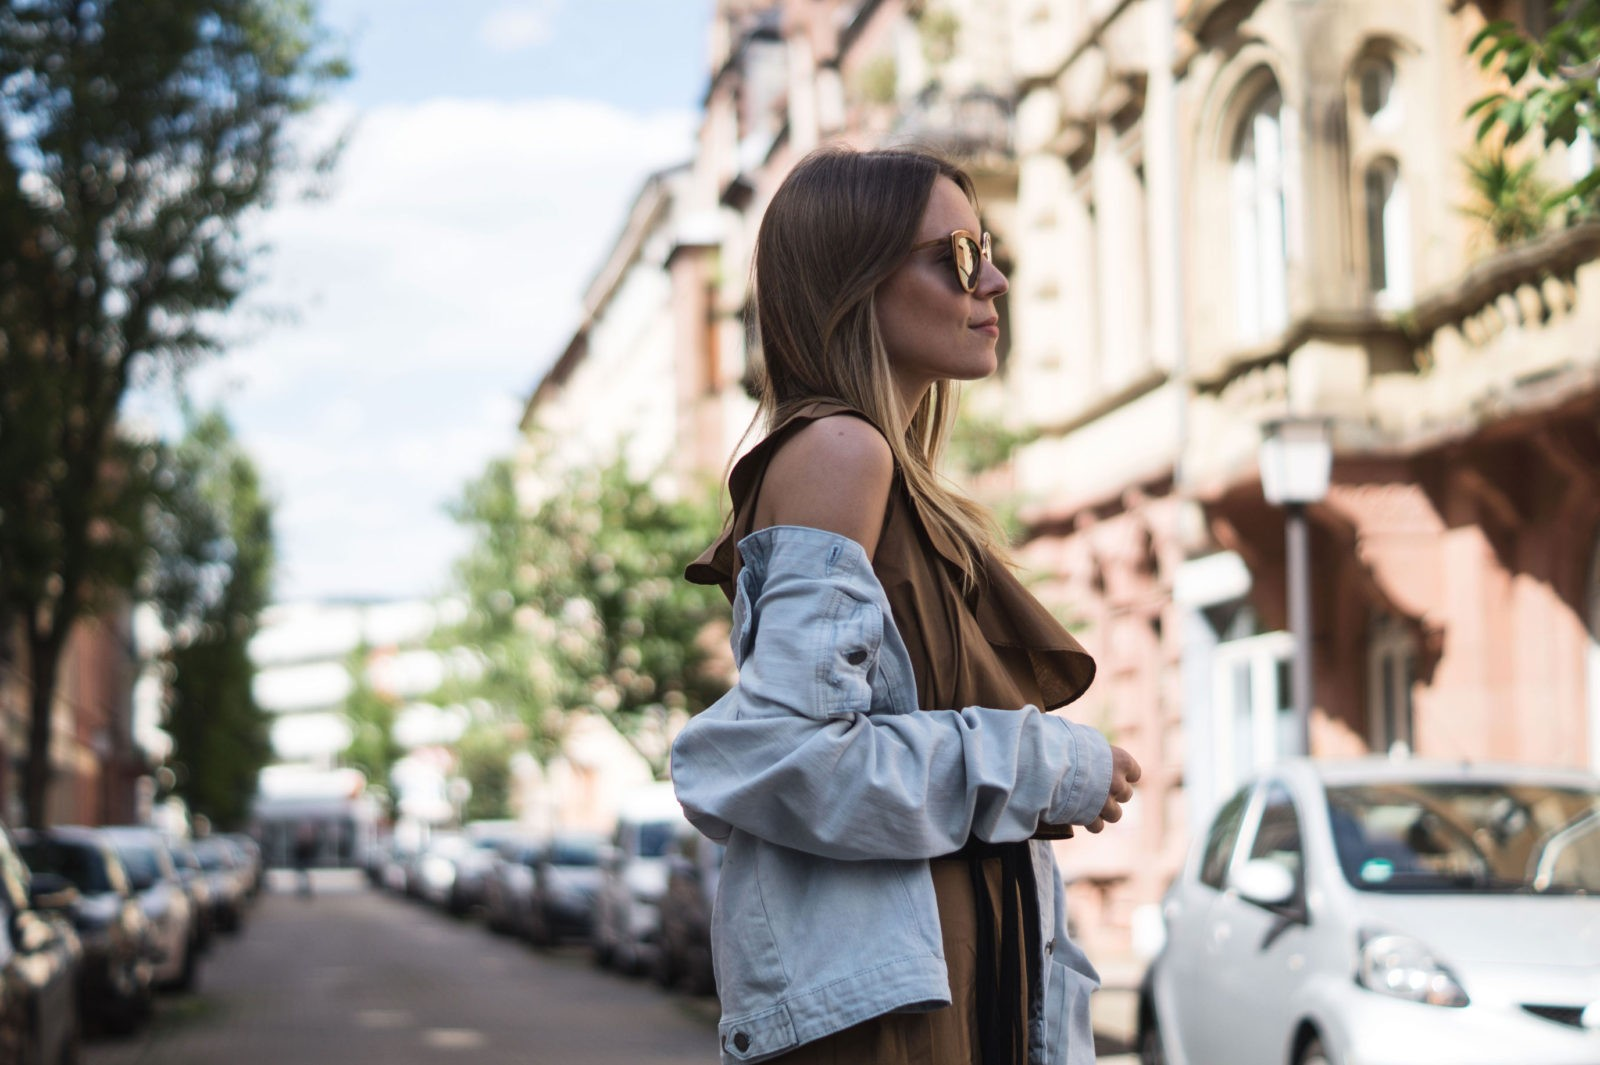 Sariety Modeblog Sarah Czok Fashionblogger Streetstyle Outfit Jumpsuit Obersize Denim Jeansjacke-8